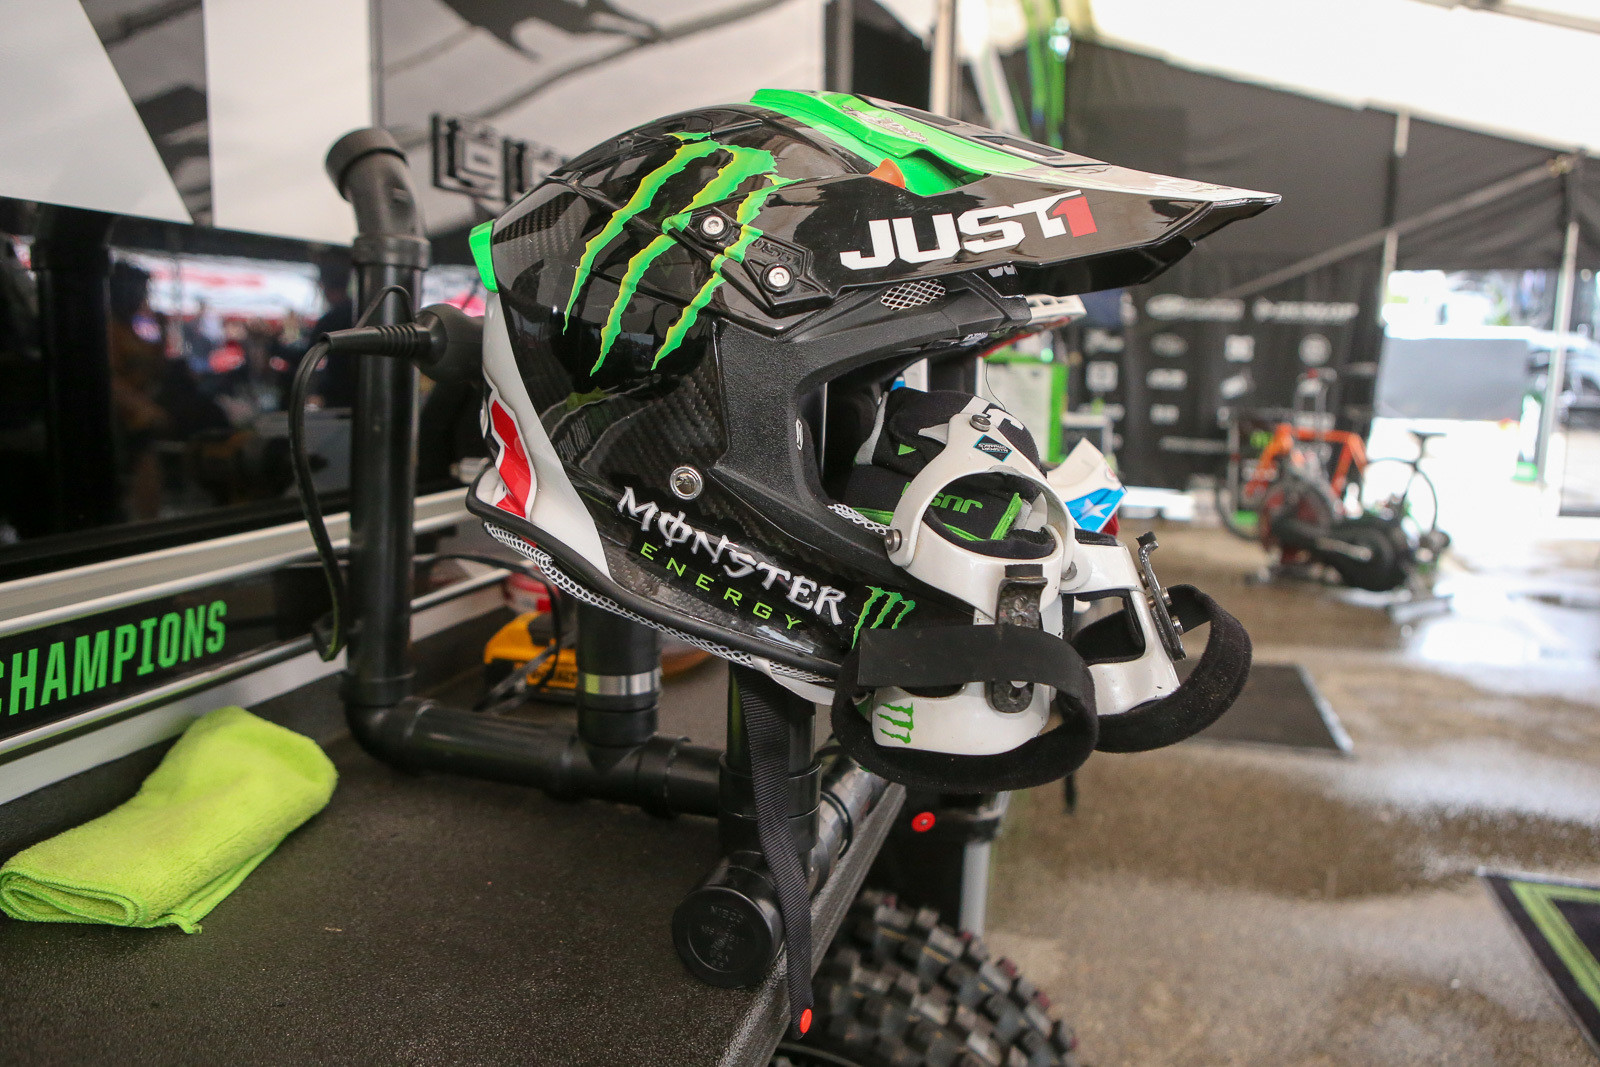 Want a little DIY action? The Monster Energy Kawasaki guys needed a new helmet dryer, so they put together this one using a batch of PVC pipe.